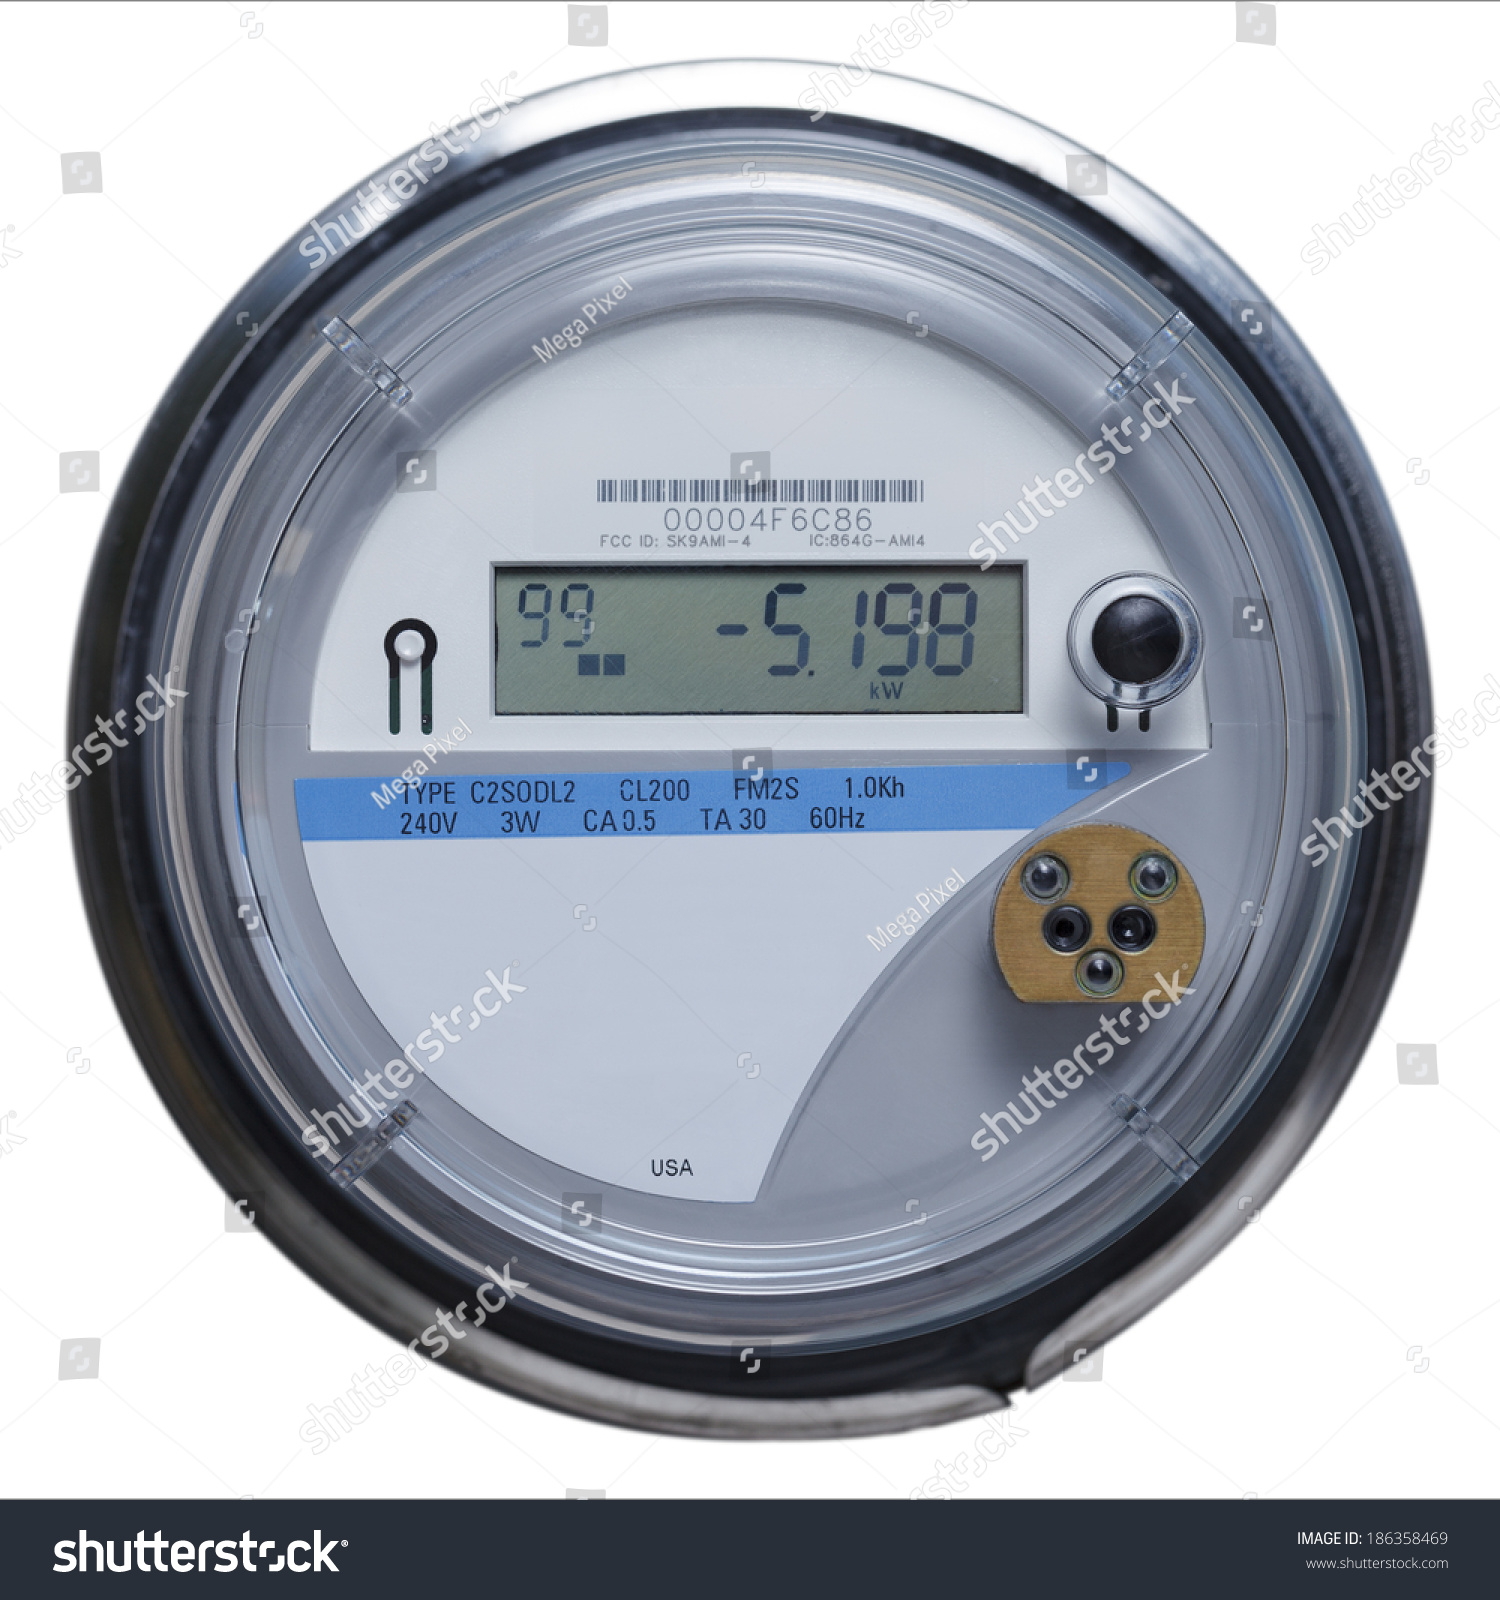 Multifunction Meter Front View : Electric meter front view copy space stock photo